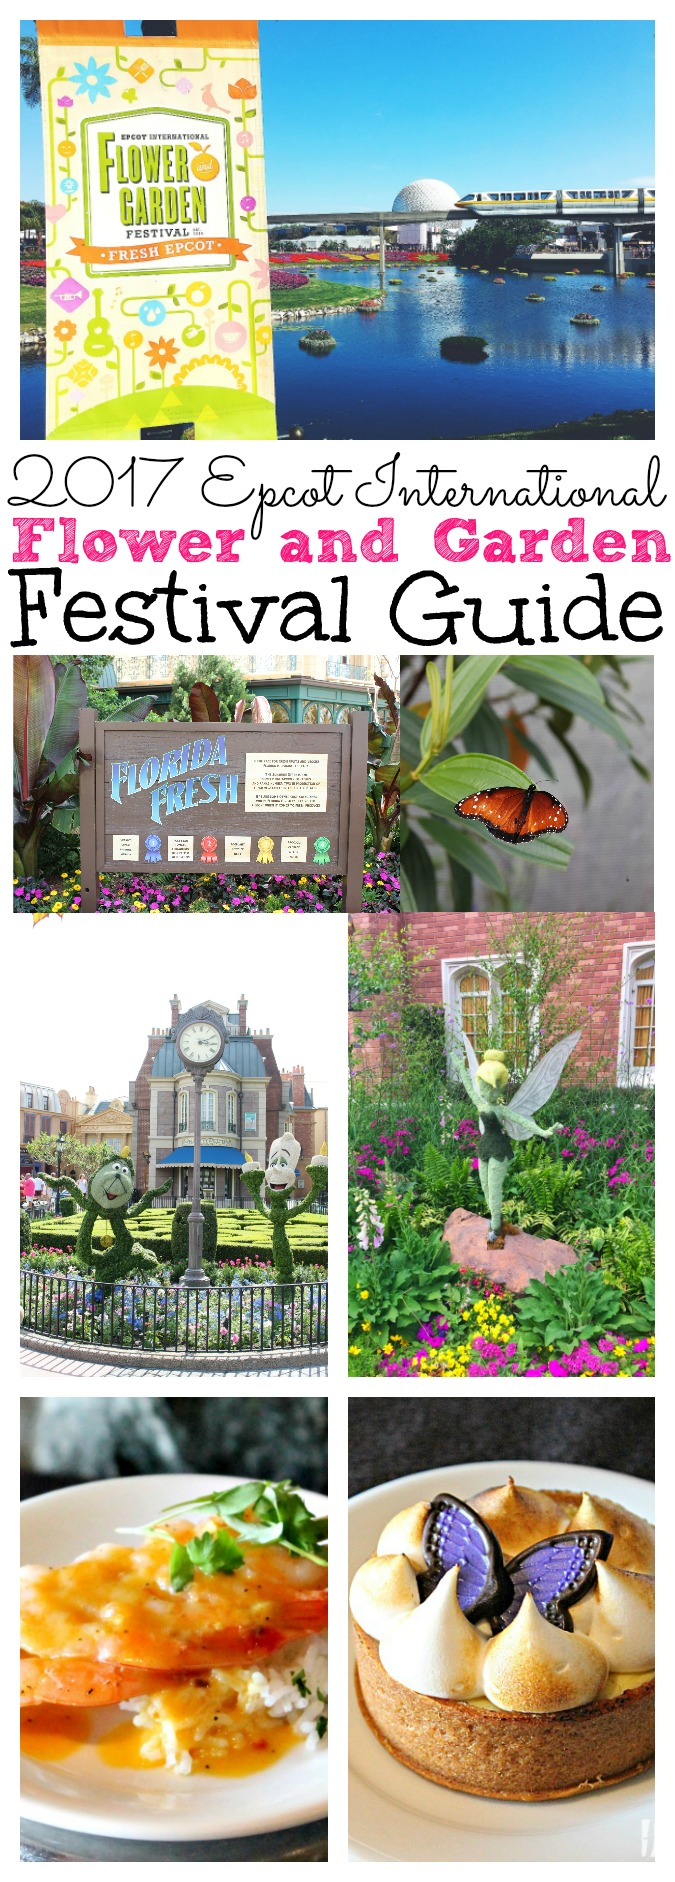 2017 Epccot International Flower and Garden Festival Guide